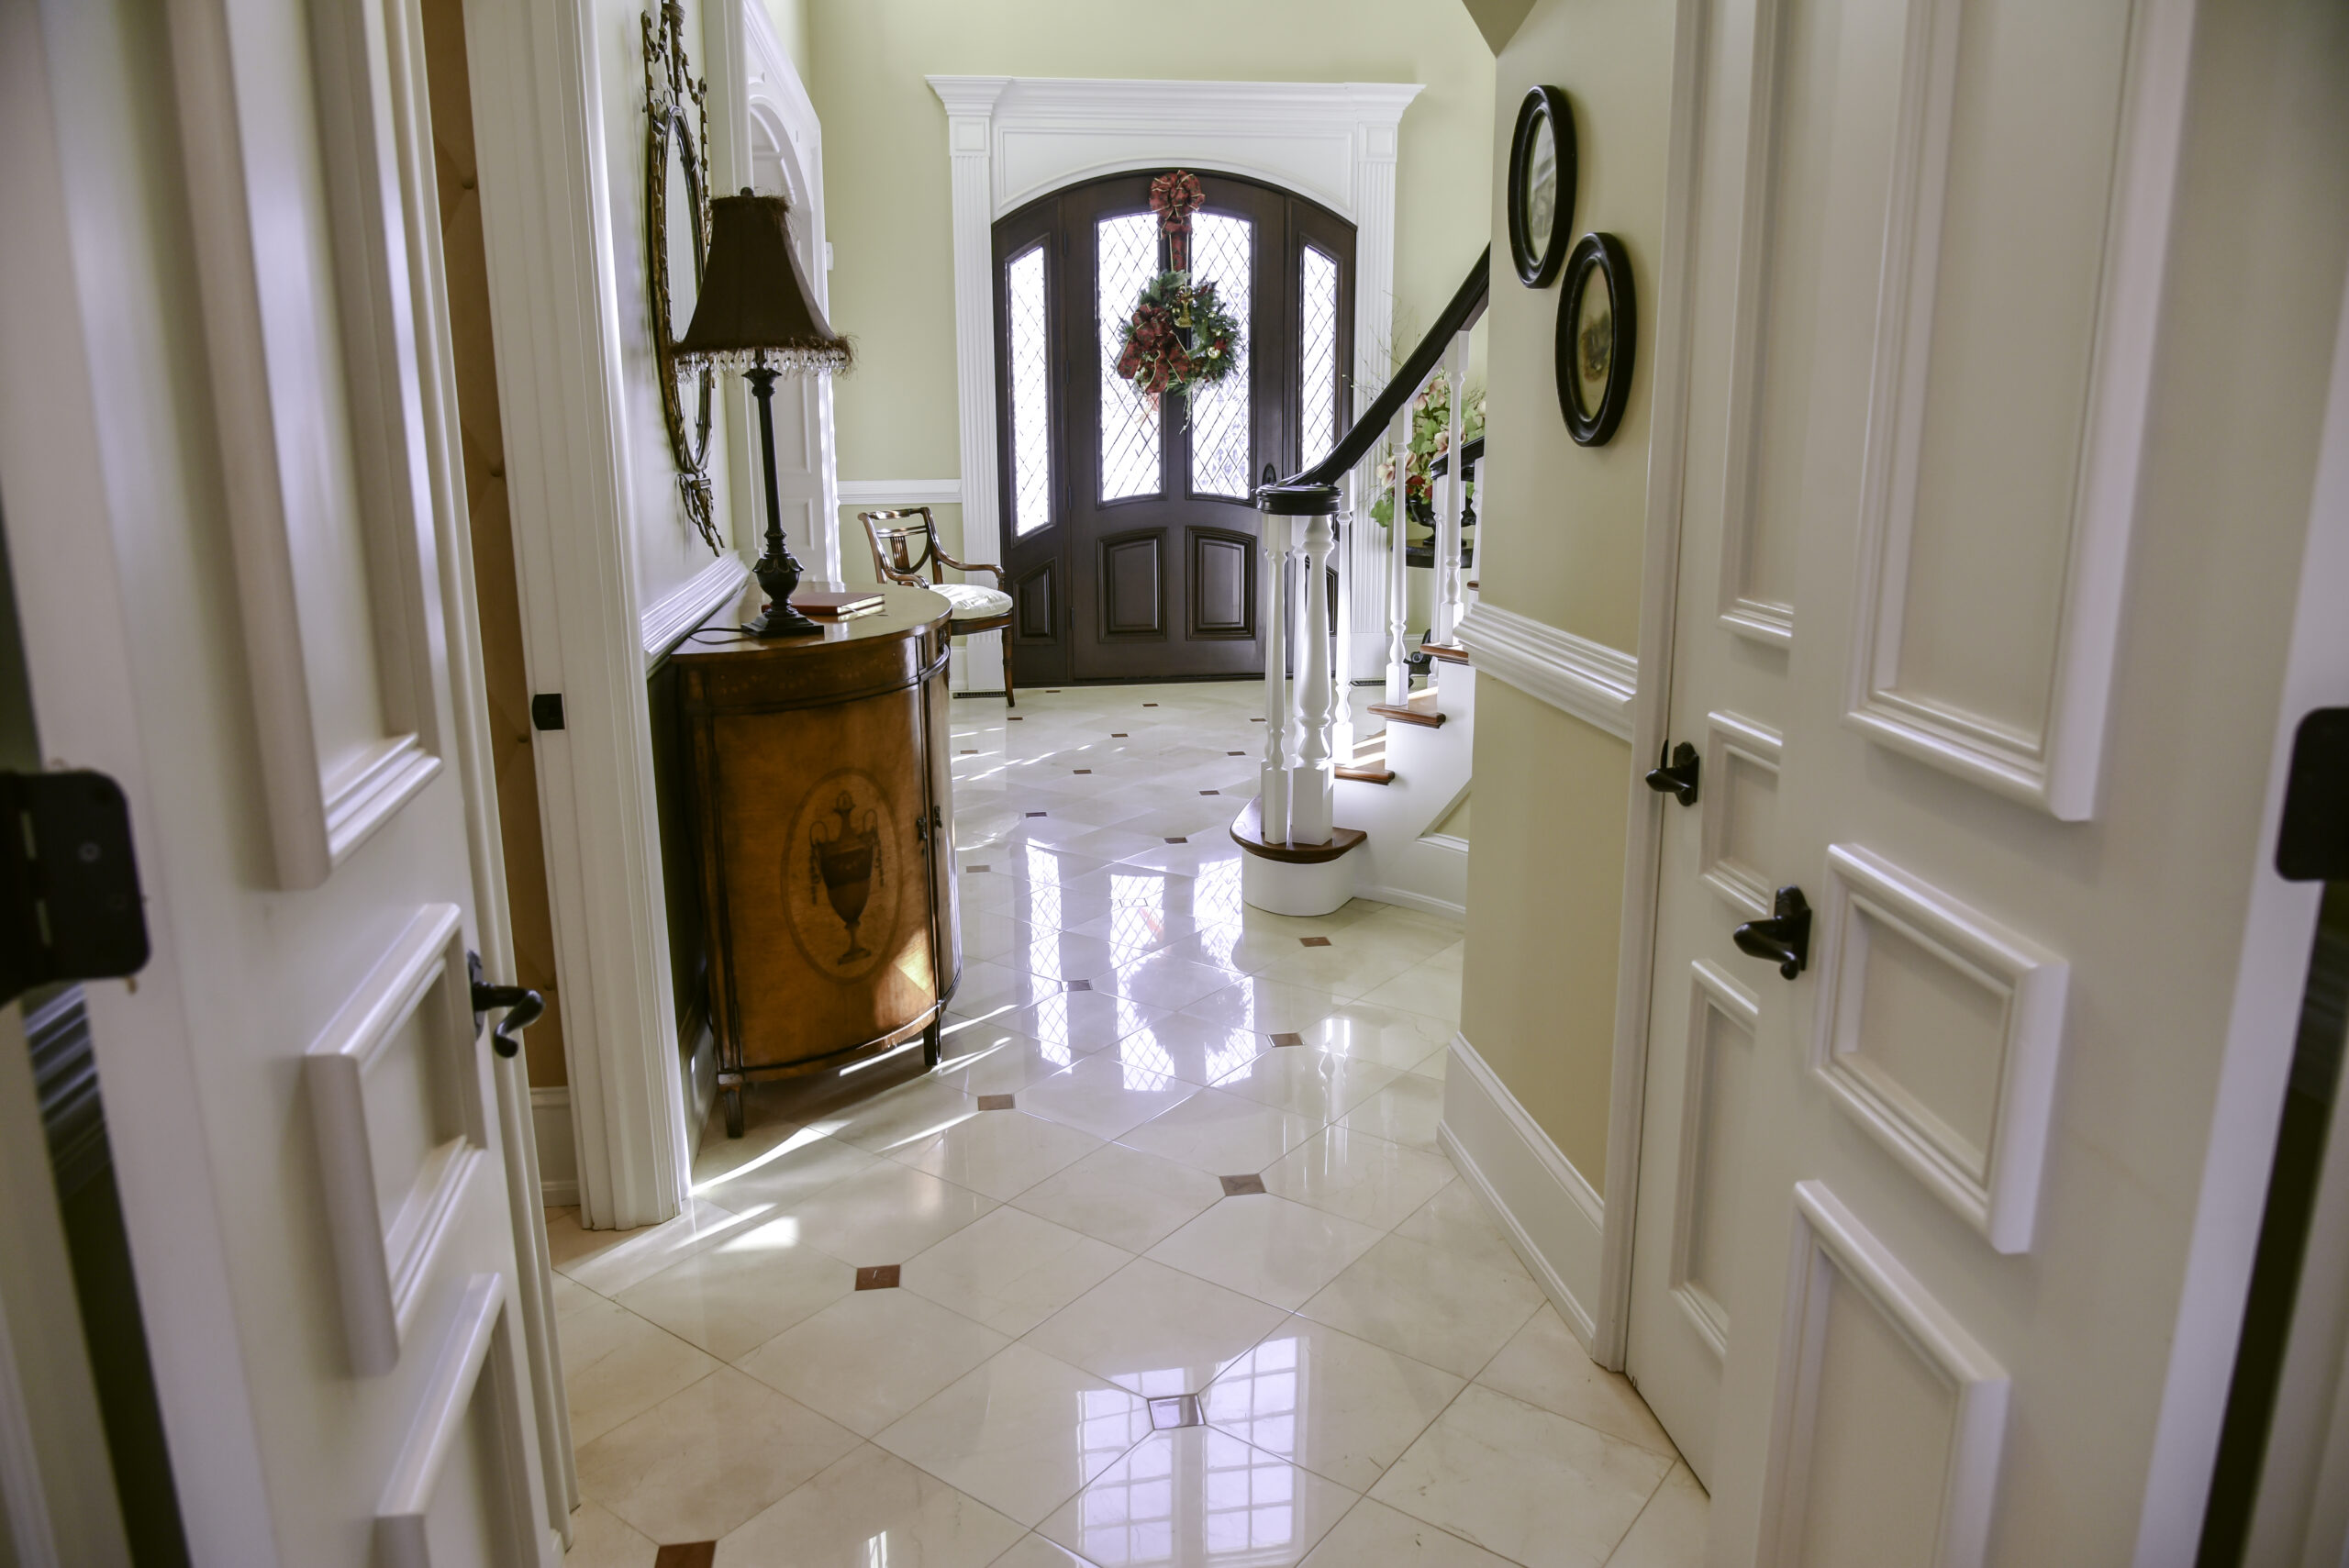 CREMA MARFIL MARBLE FLOOR RESTORATION – ACHIEVING HIGH GLOSS RESULTS WITH ONLY MECHANICAL DIAMOND POLISHING STEPS